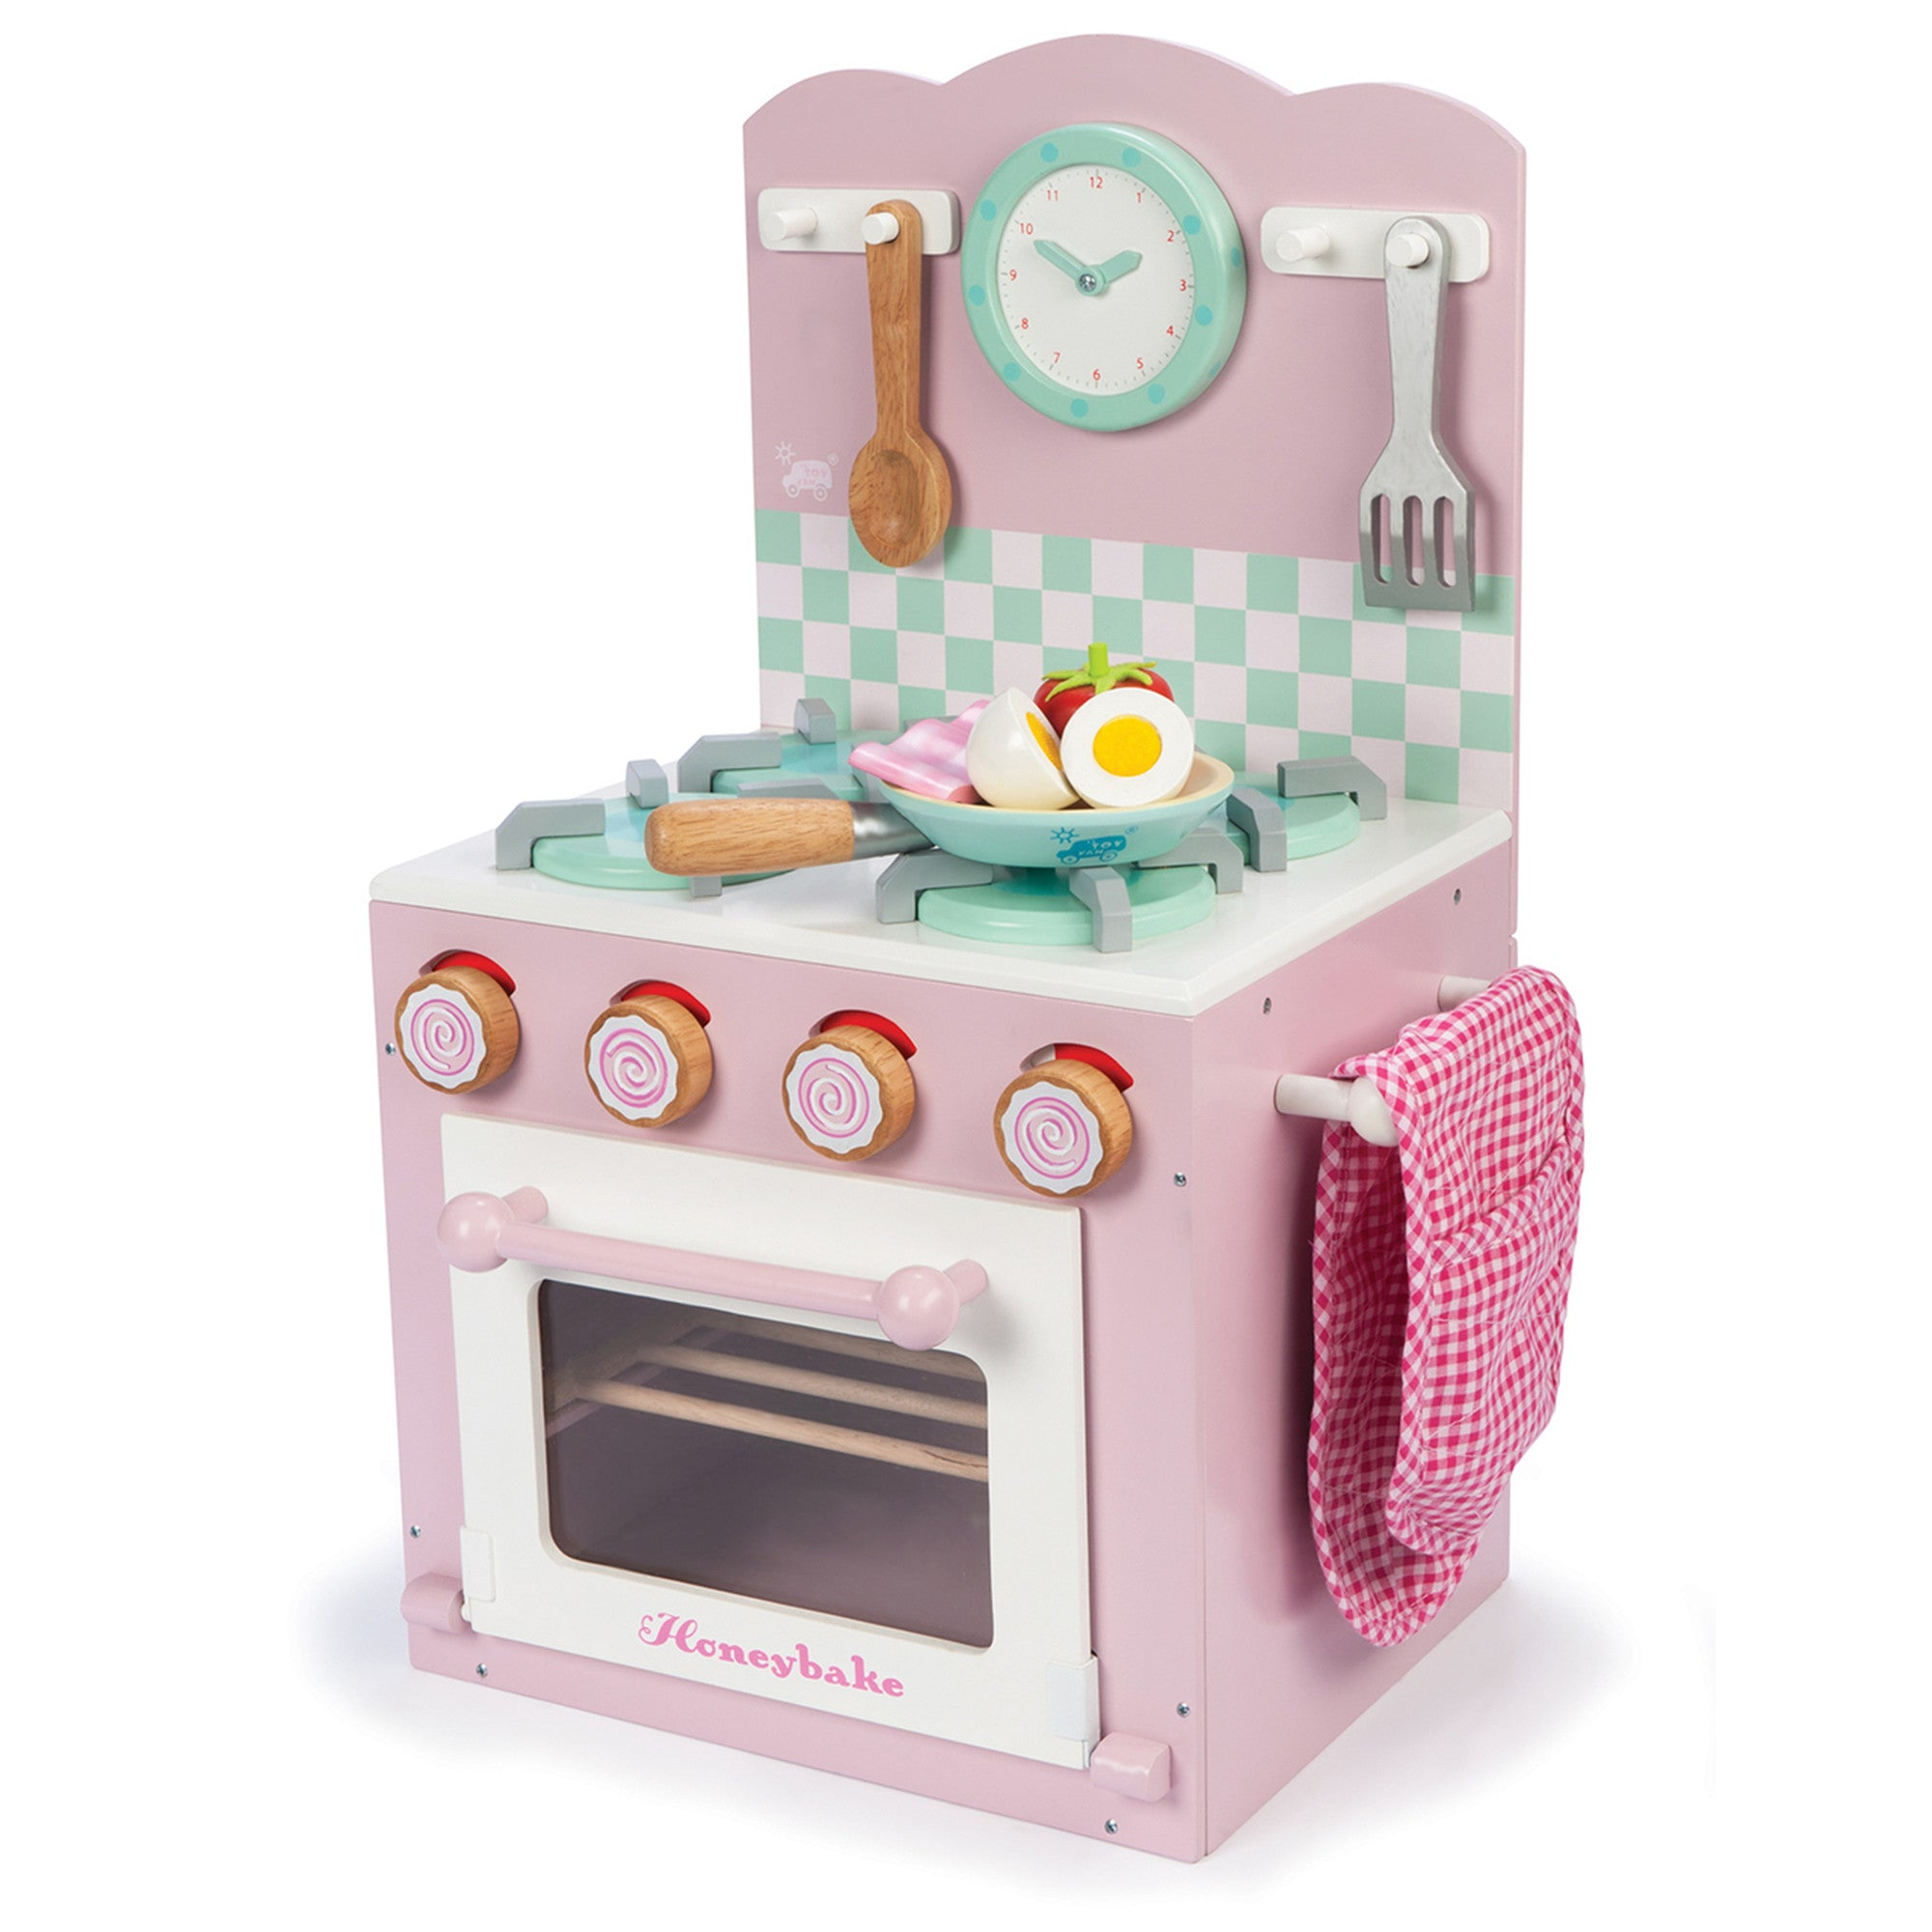 Le Toy Van Honeybake Home Kitchen Oven Le Toy Van Toy Kitchens & Play Food at Little Earth Nest Eco Shop